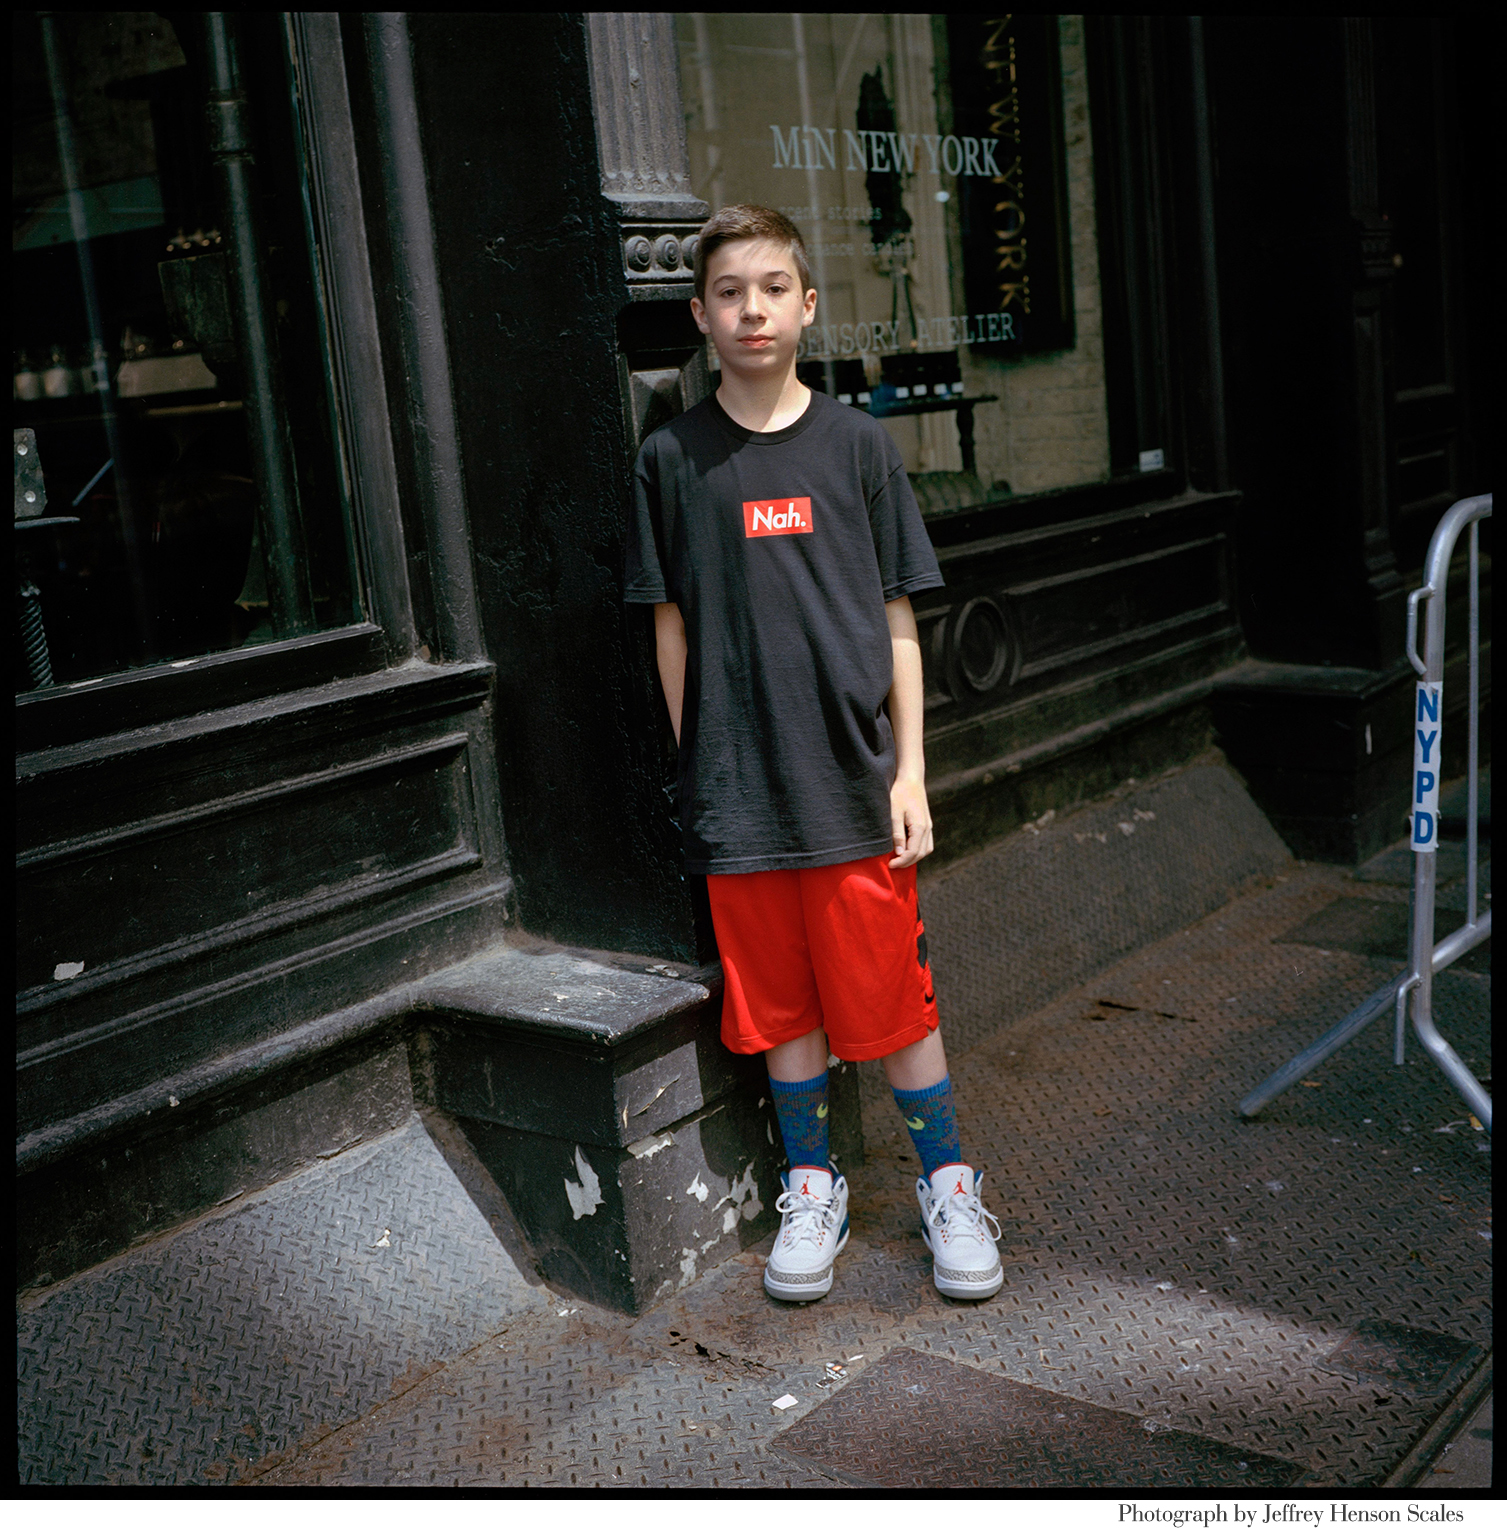 The Look _ New York Times_ Rebecca Pietri Stylist _ Casting _ Jeffery Henson Scale Photgrapher_Eve Lyon Editor_ New Geeks_Article_Nom Core- Youth Fashion_ Supreme_Palace_Vans_Street fashion _ Soho_ Teens_Nah_Shot .JPG